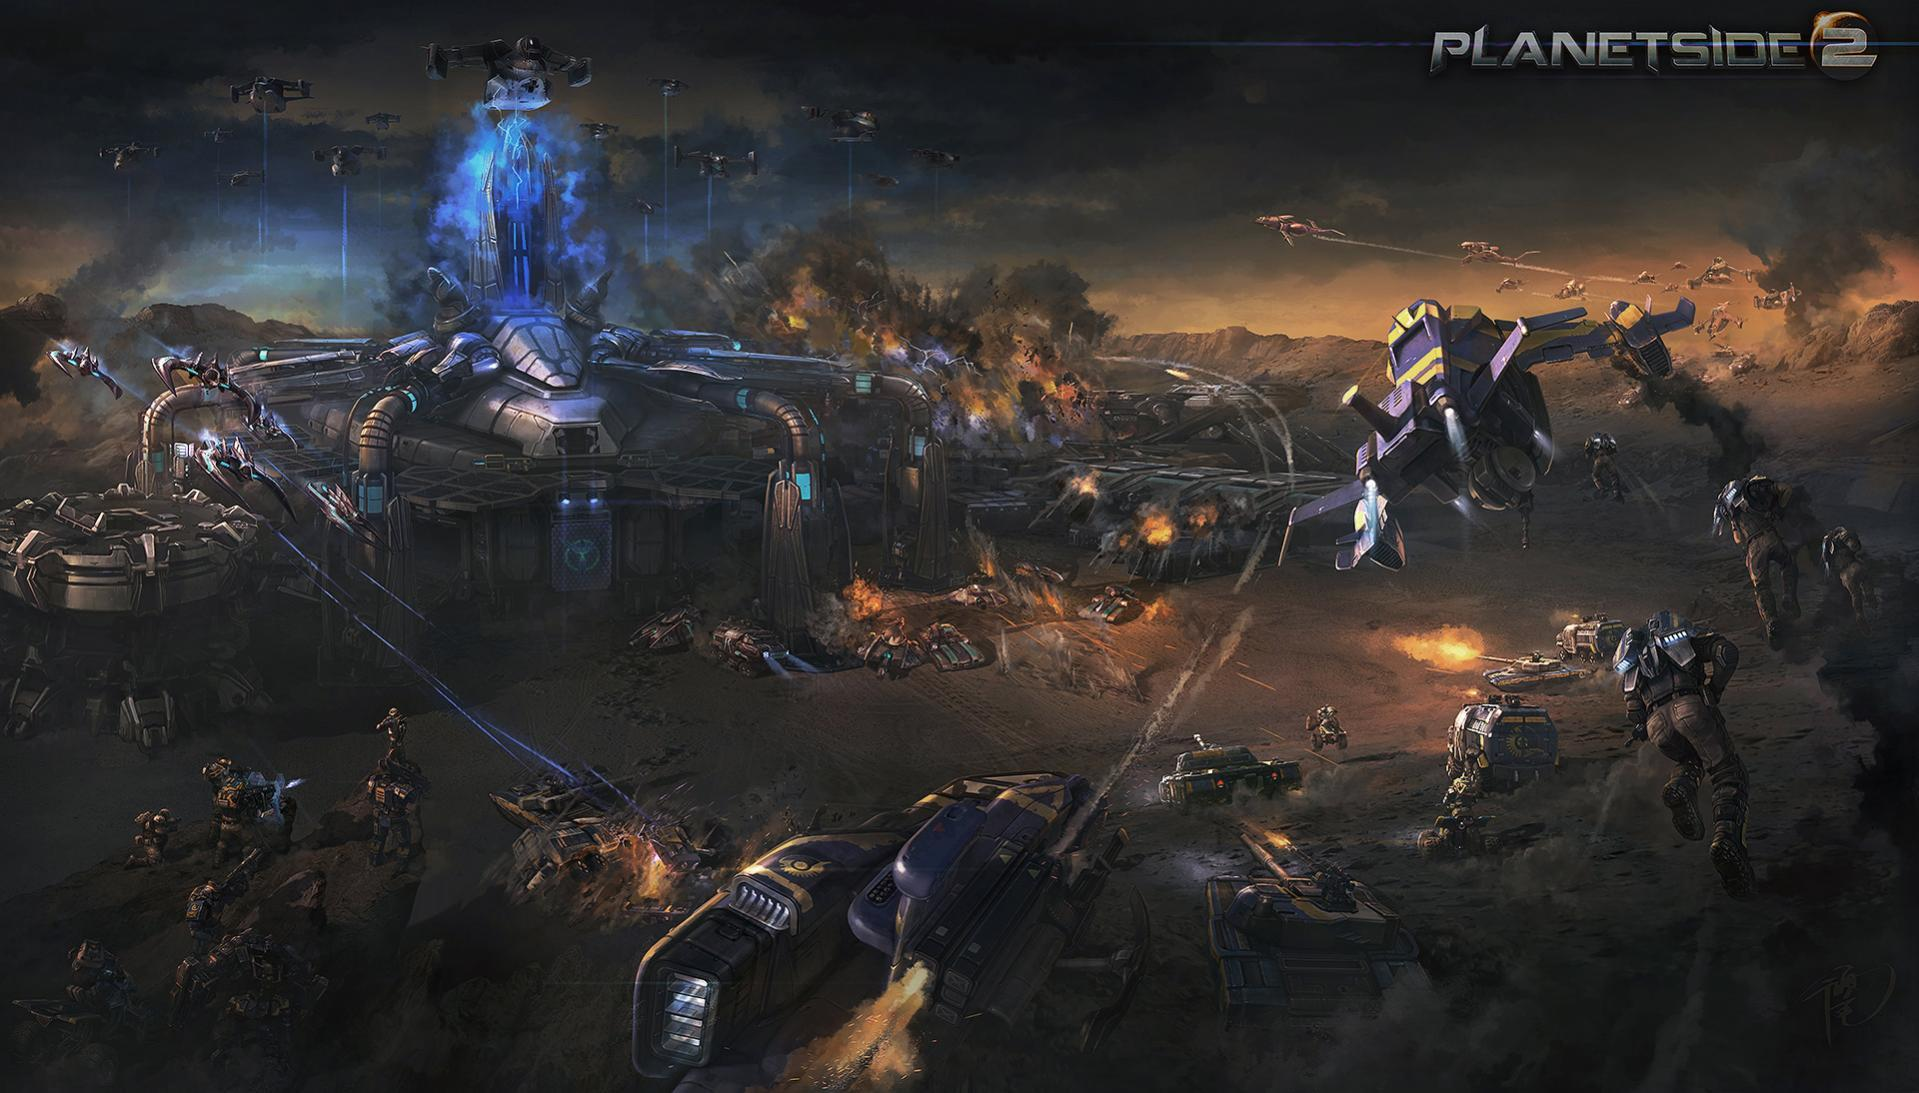 Planetside 2 HD Wallpapers and Background Images   stmednet 1919x1093